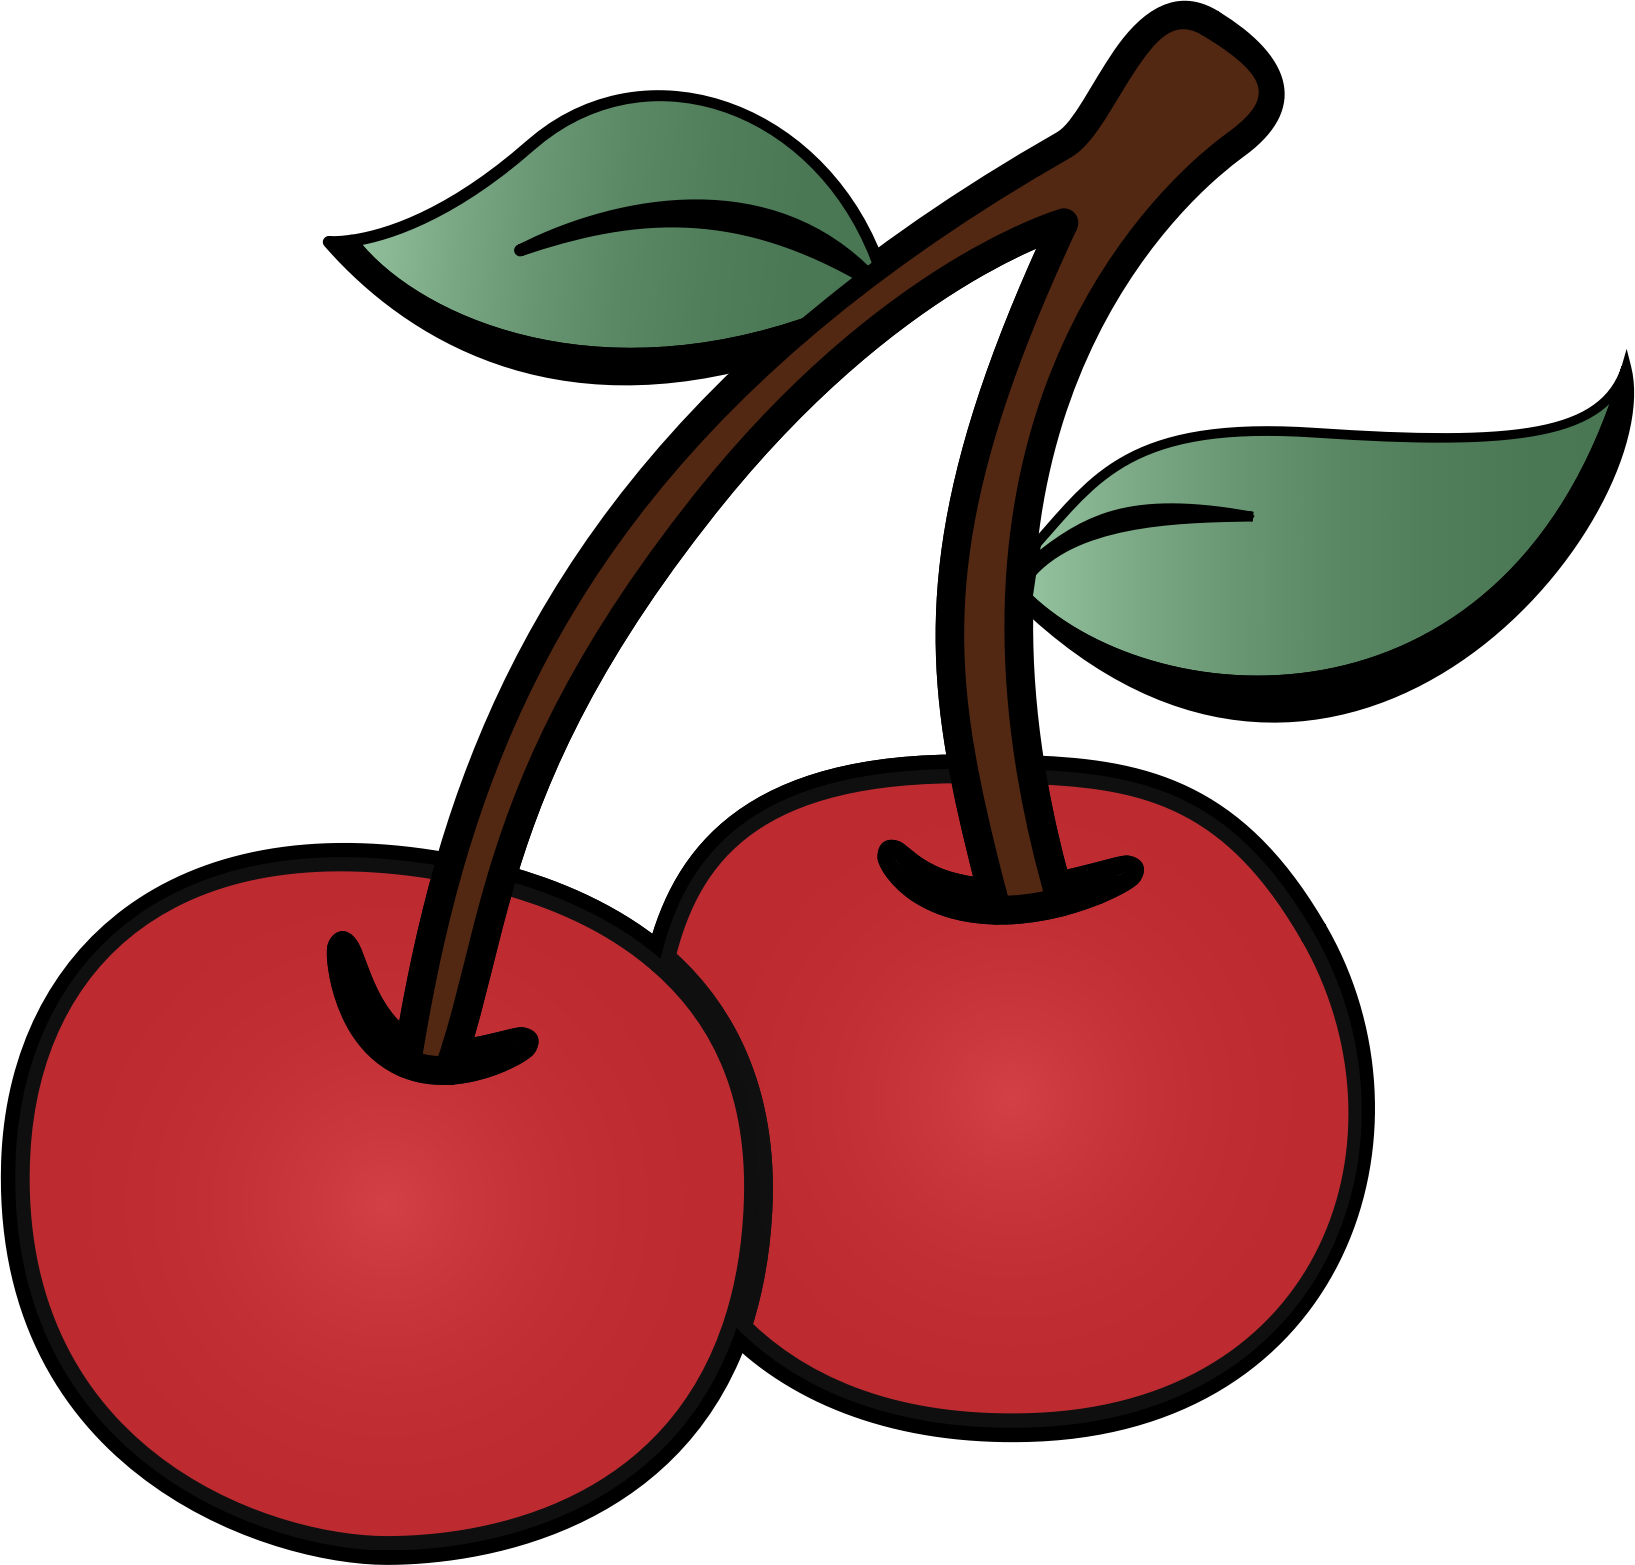 Cherry clipart cherry outline. Two cherries big image